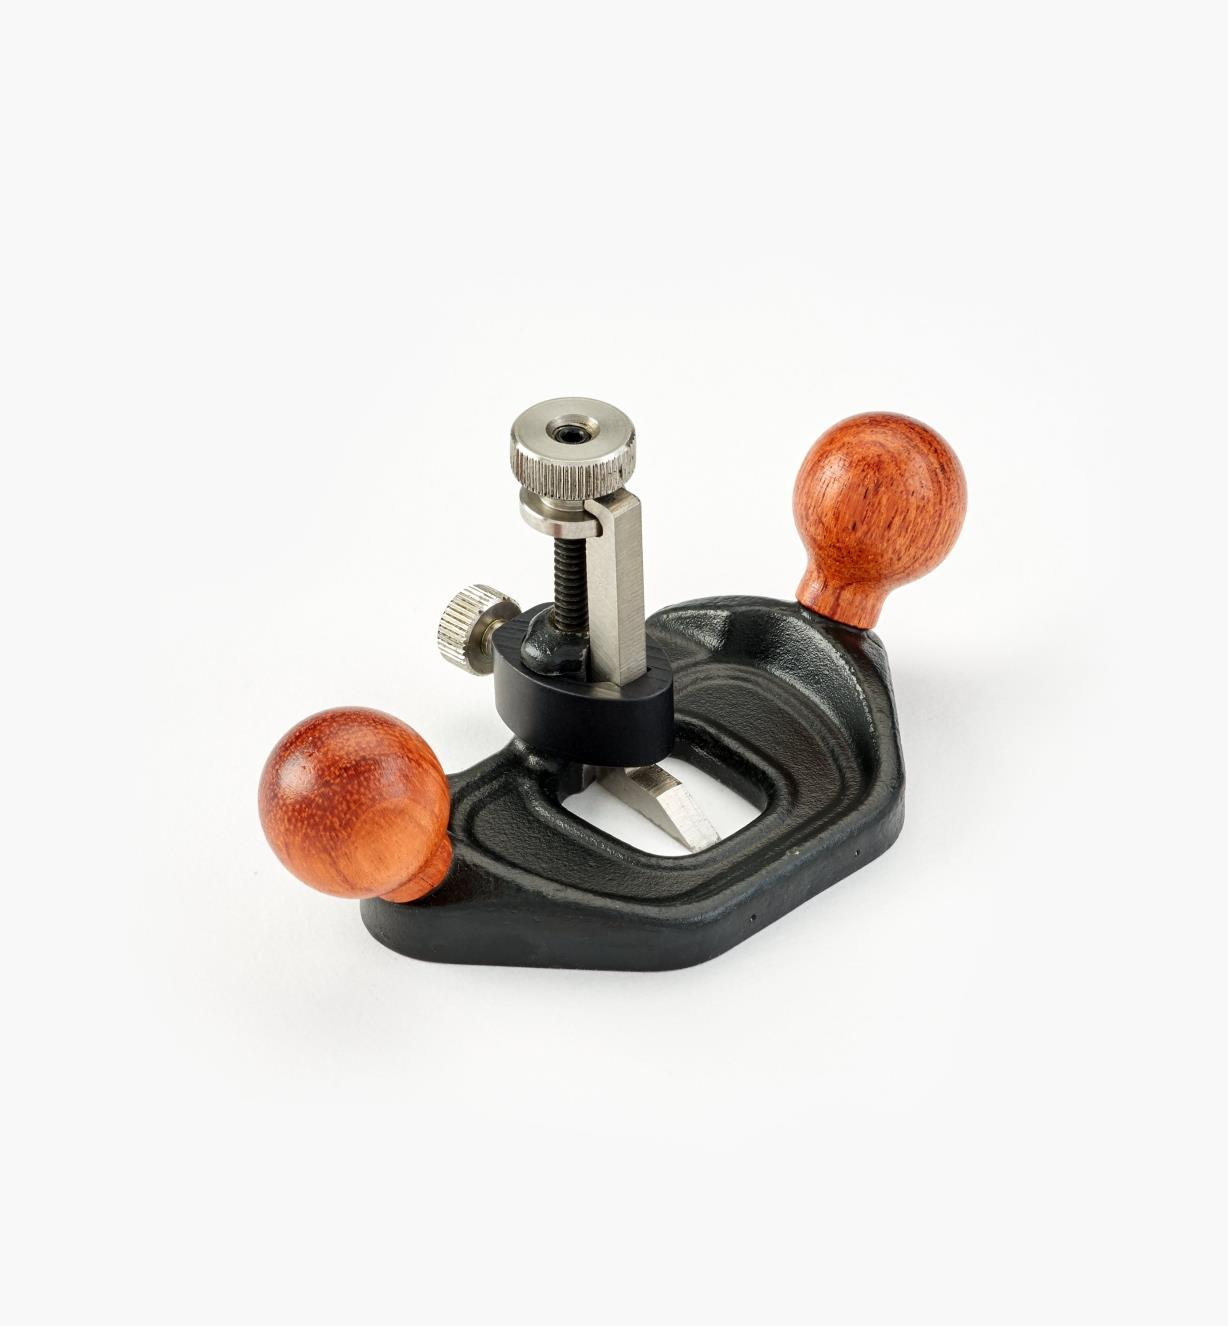 05P8201 - Veritas Miniature Router Plane